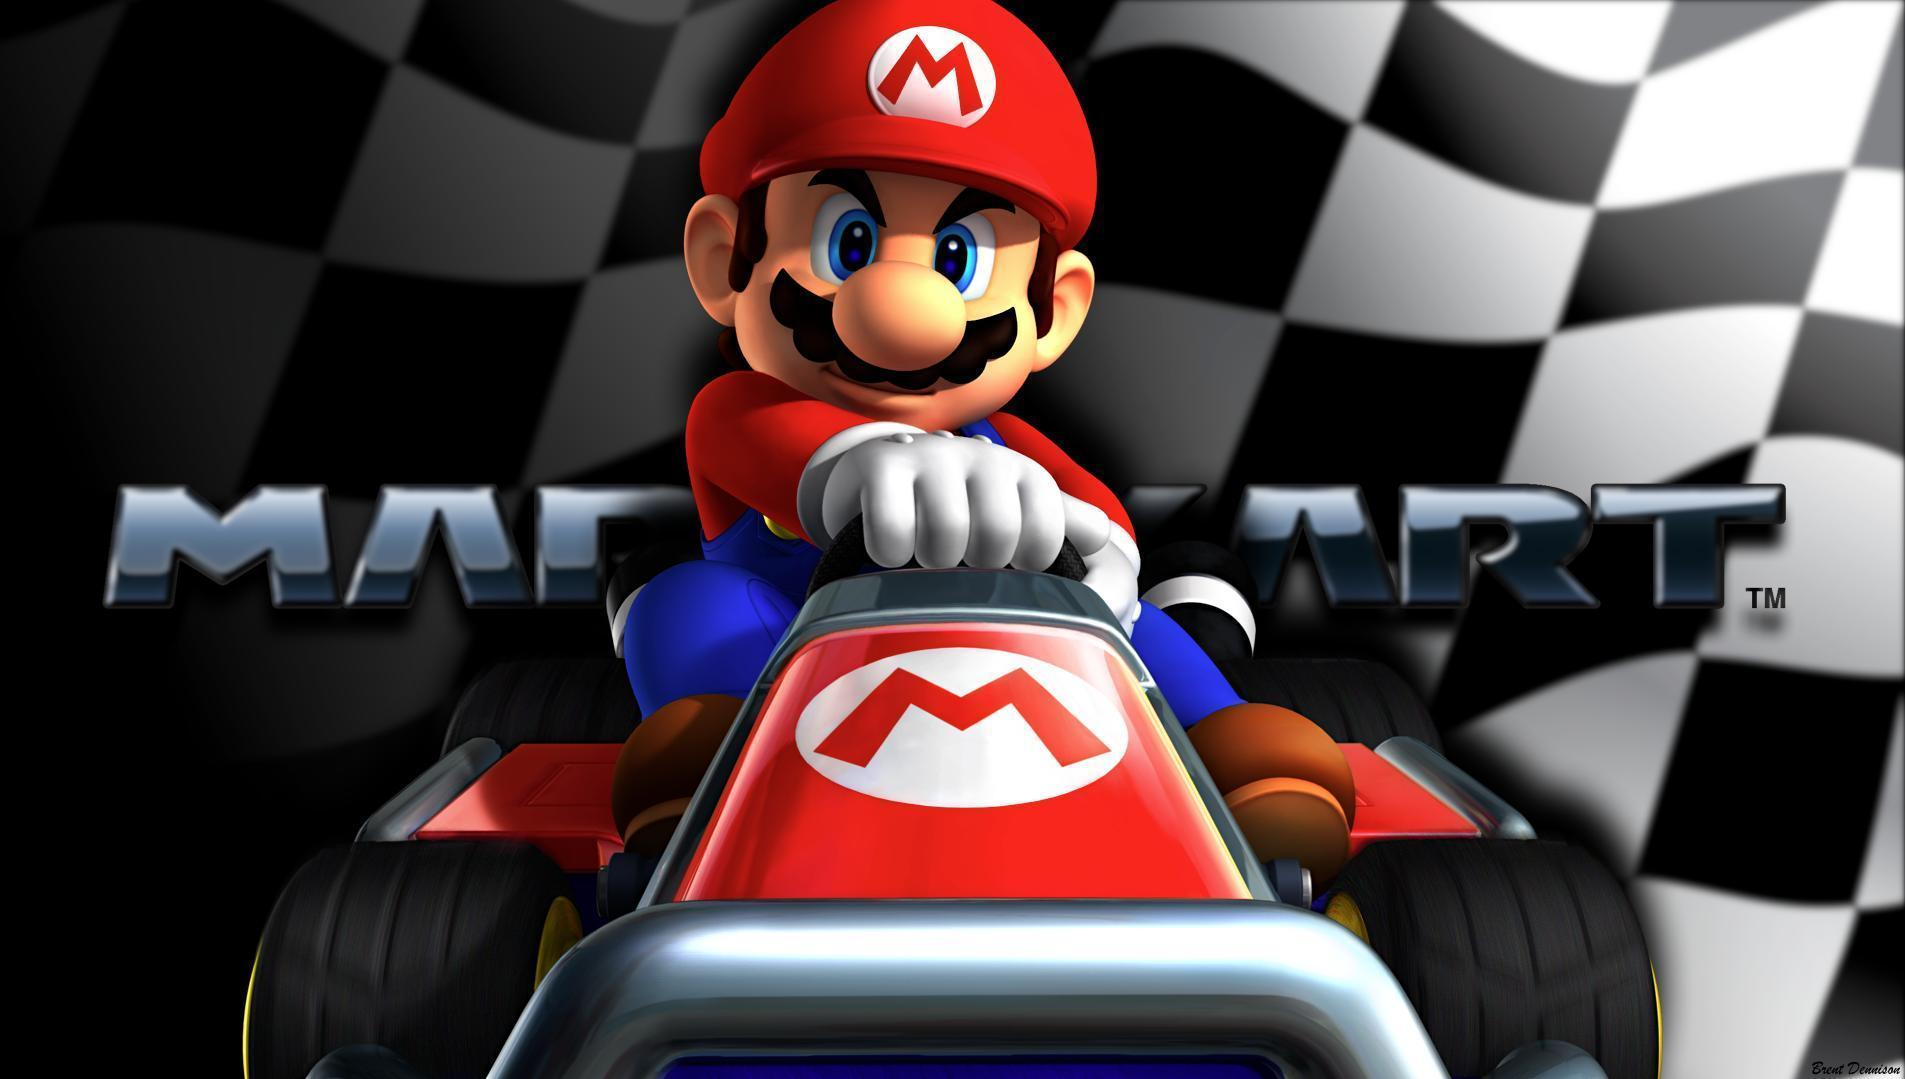 mario kart wallpapers wallpaper cave. Black Bedroom Furniture Sets. Home Design Ideas